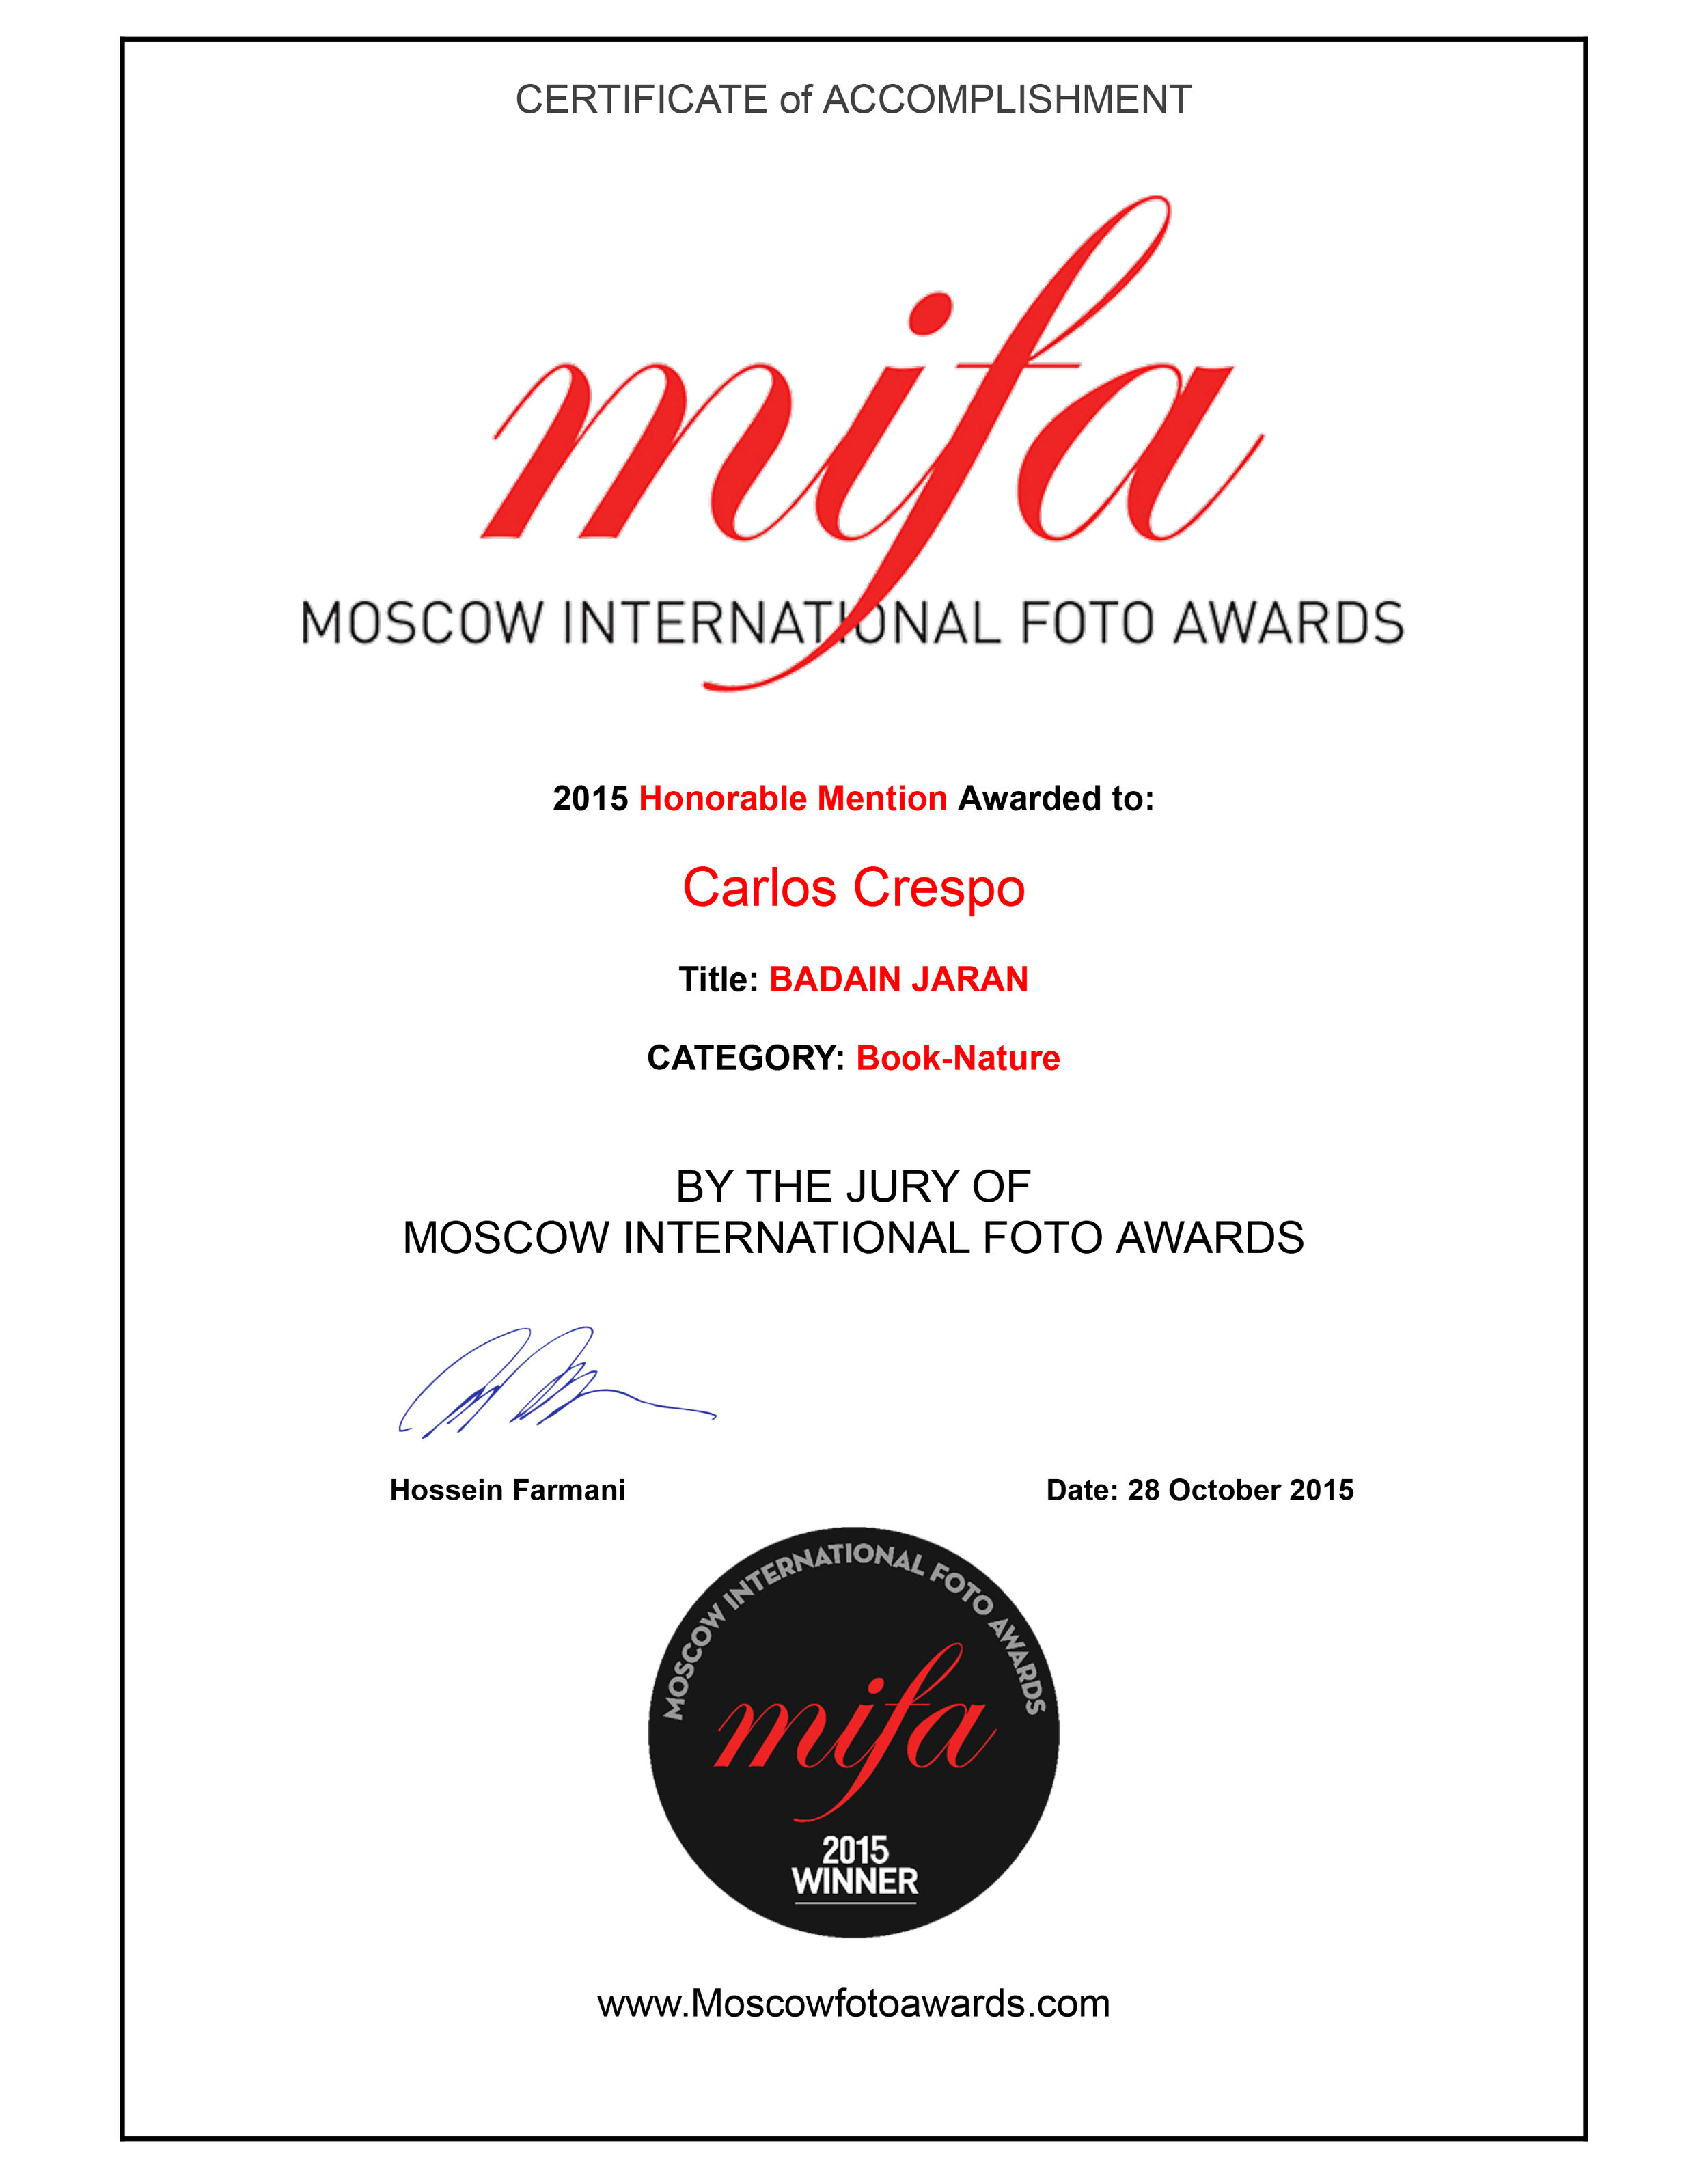 Moscow International Foto Award Honorable Mention